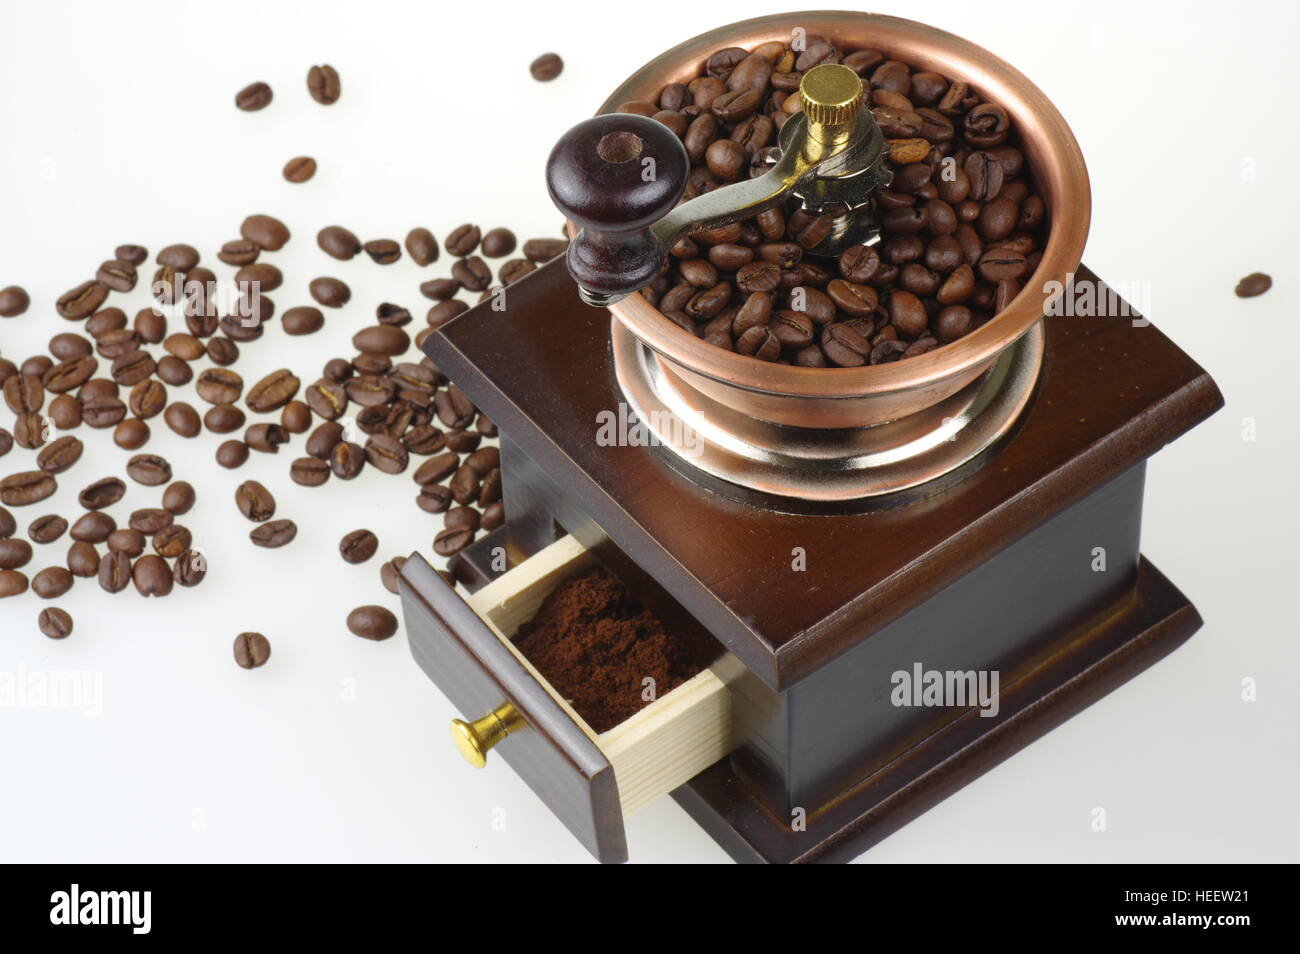 Old-style manual coffee grinder on the white background. Around the mill are scattered coffee beans. - Stock Image